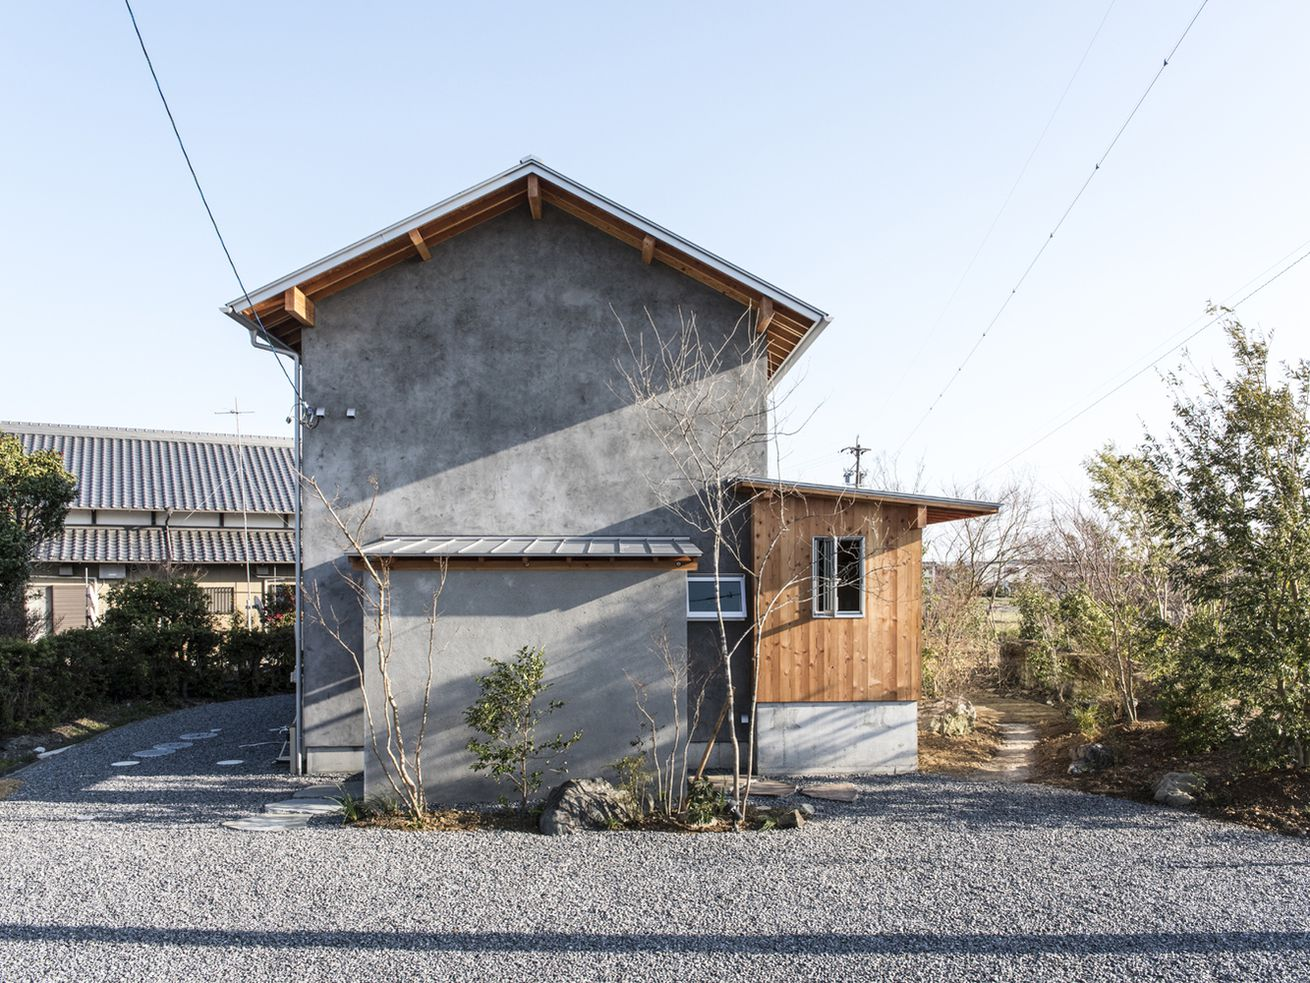 A pitch-roofed house clad in concrete and wood.